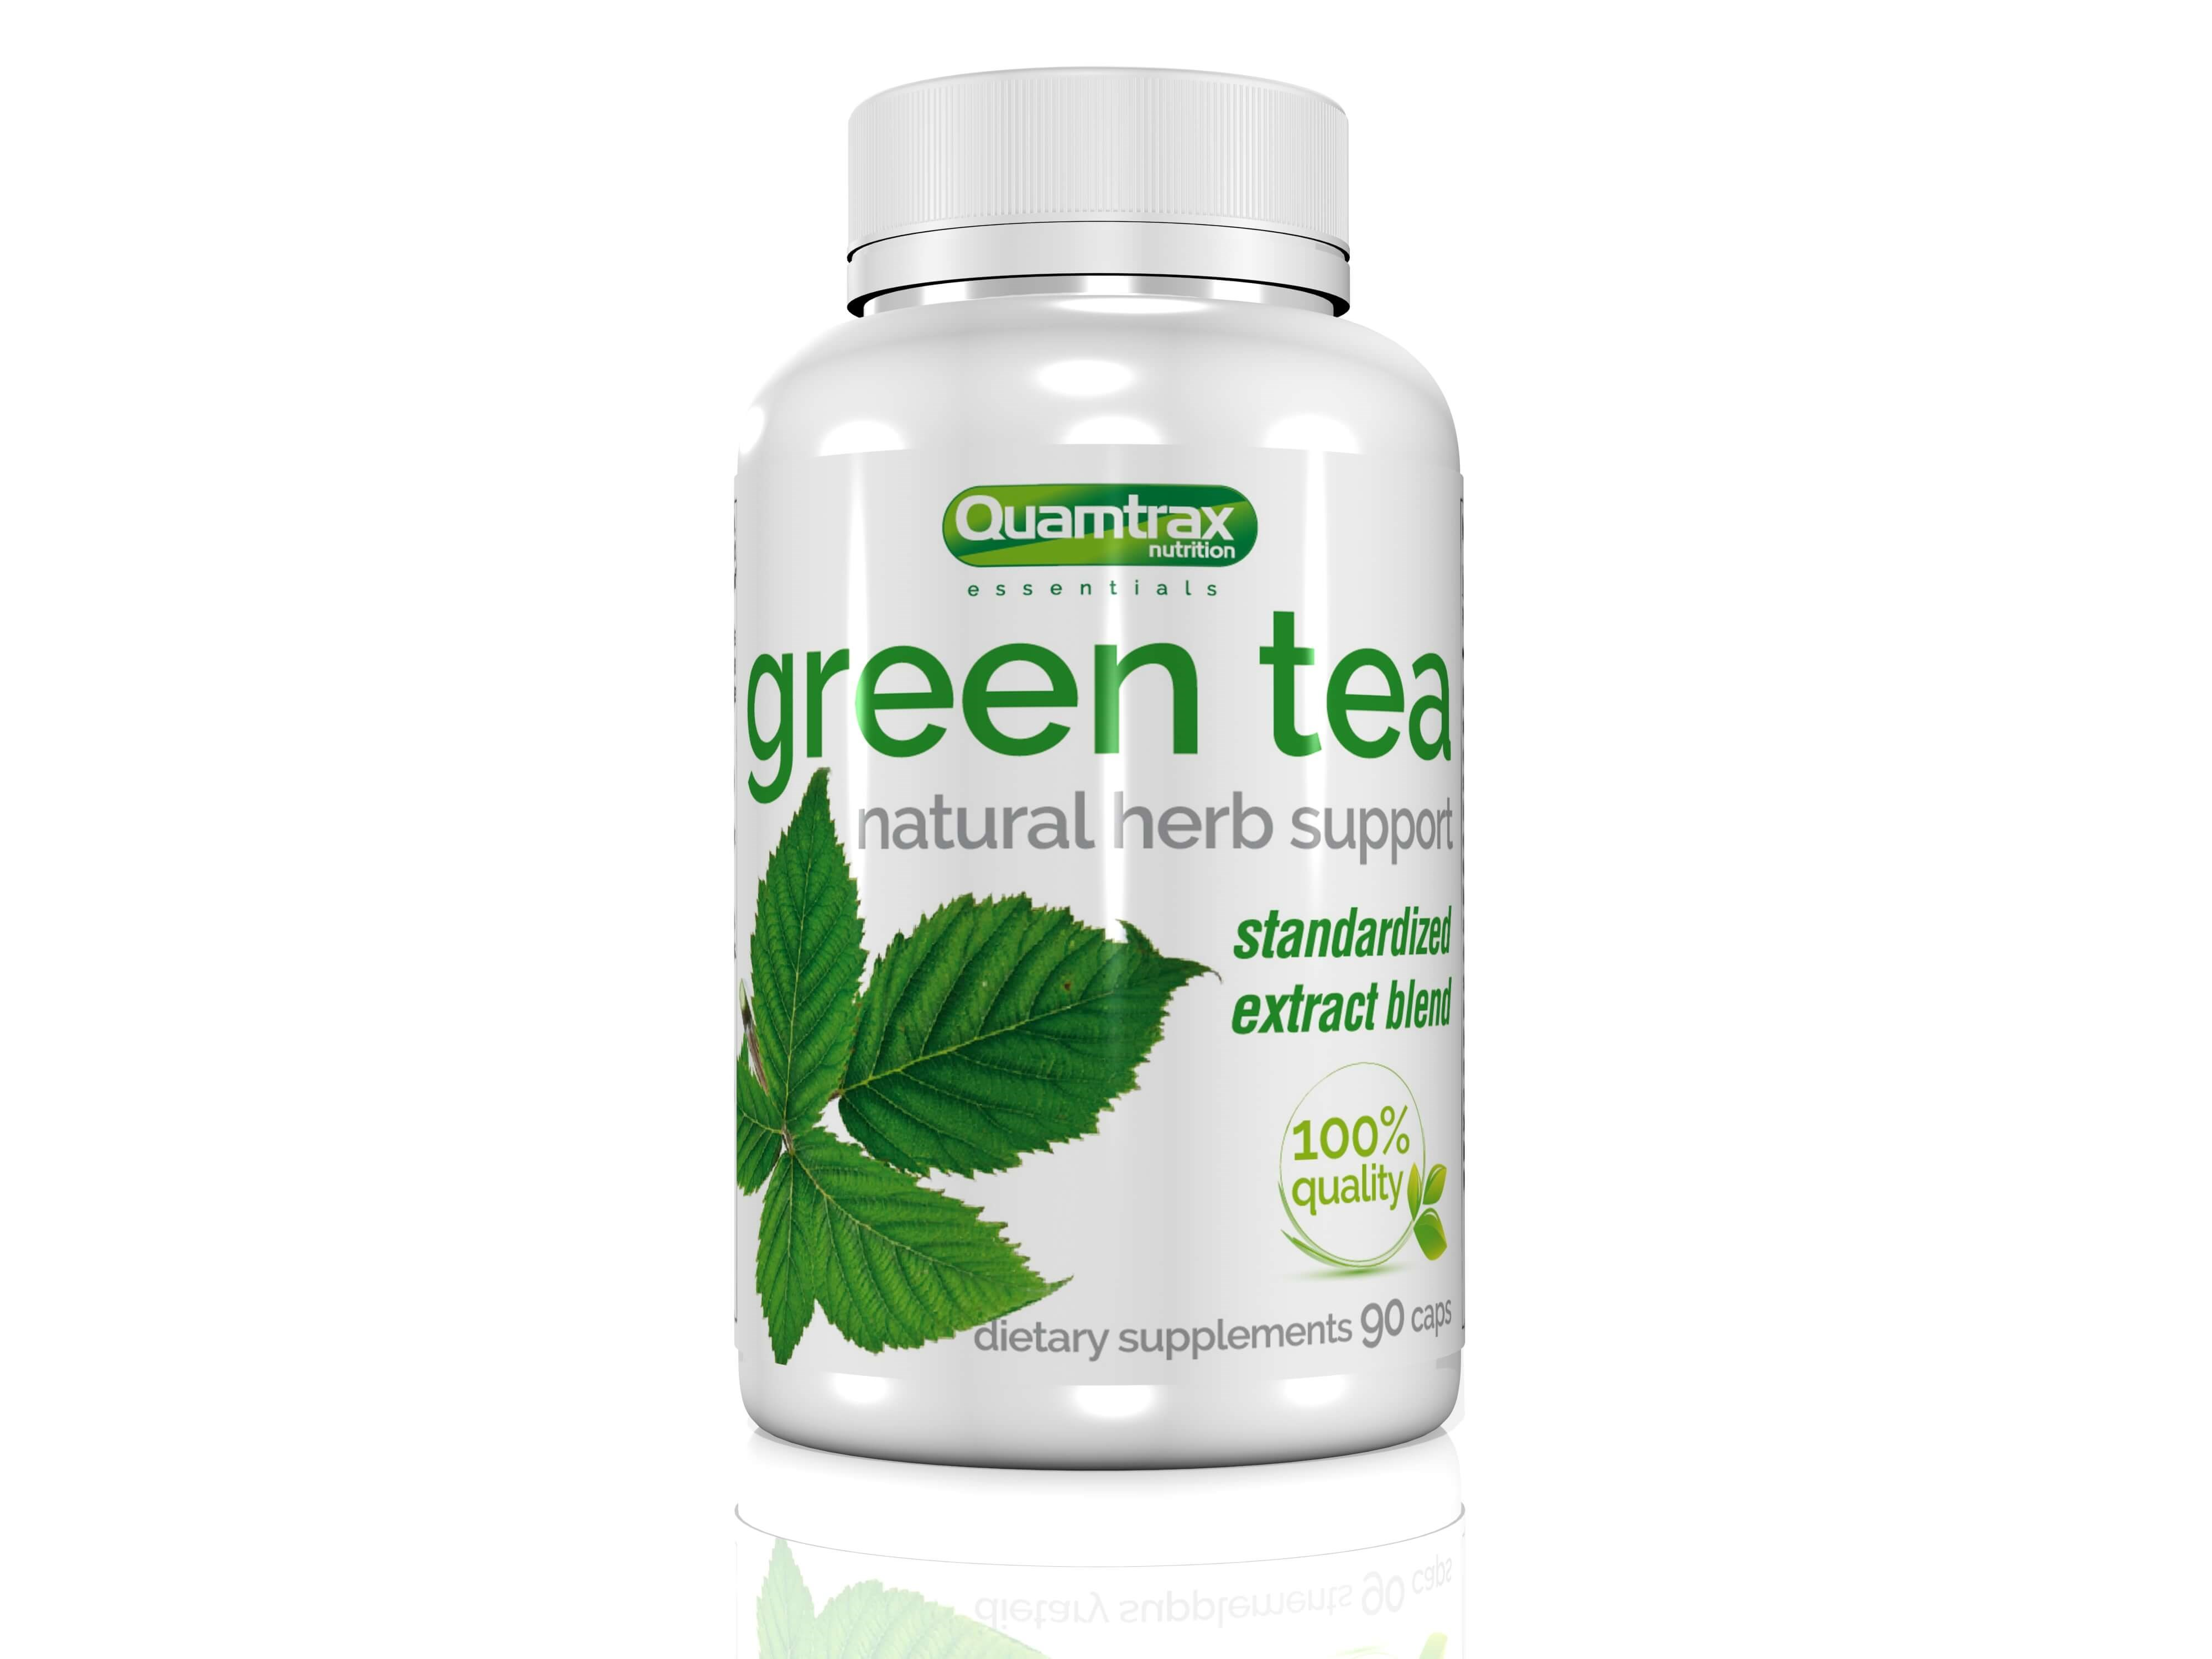 Quamtrax Essentials Green Tea 300mg 90 capsules